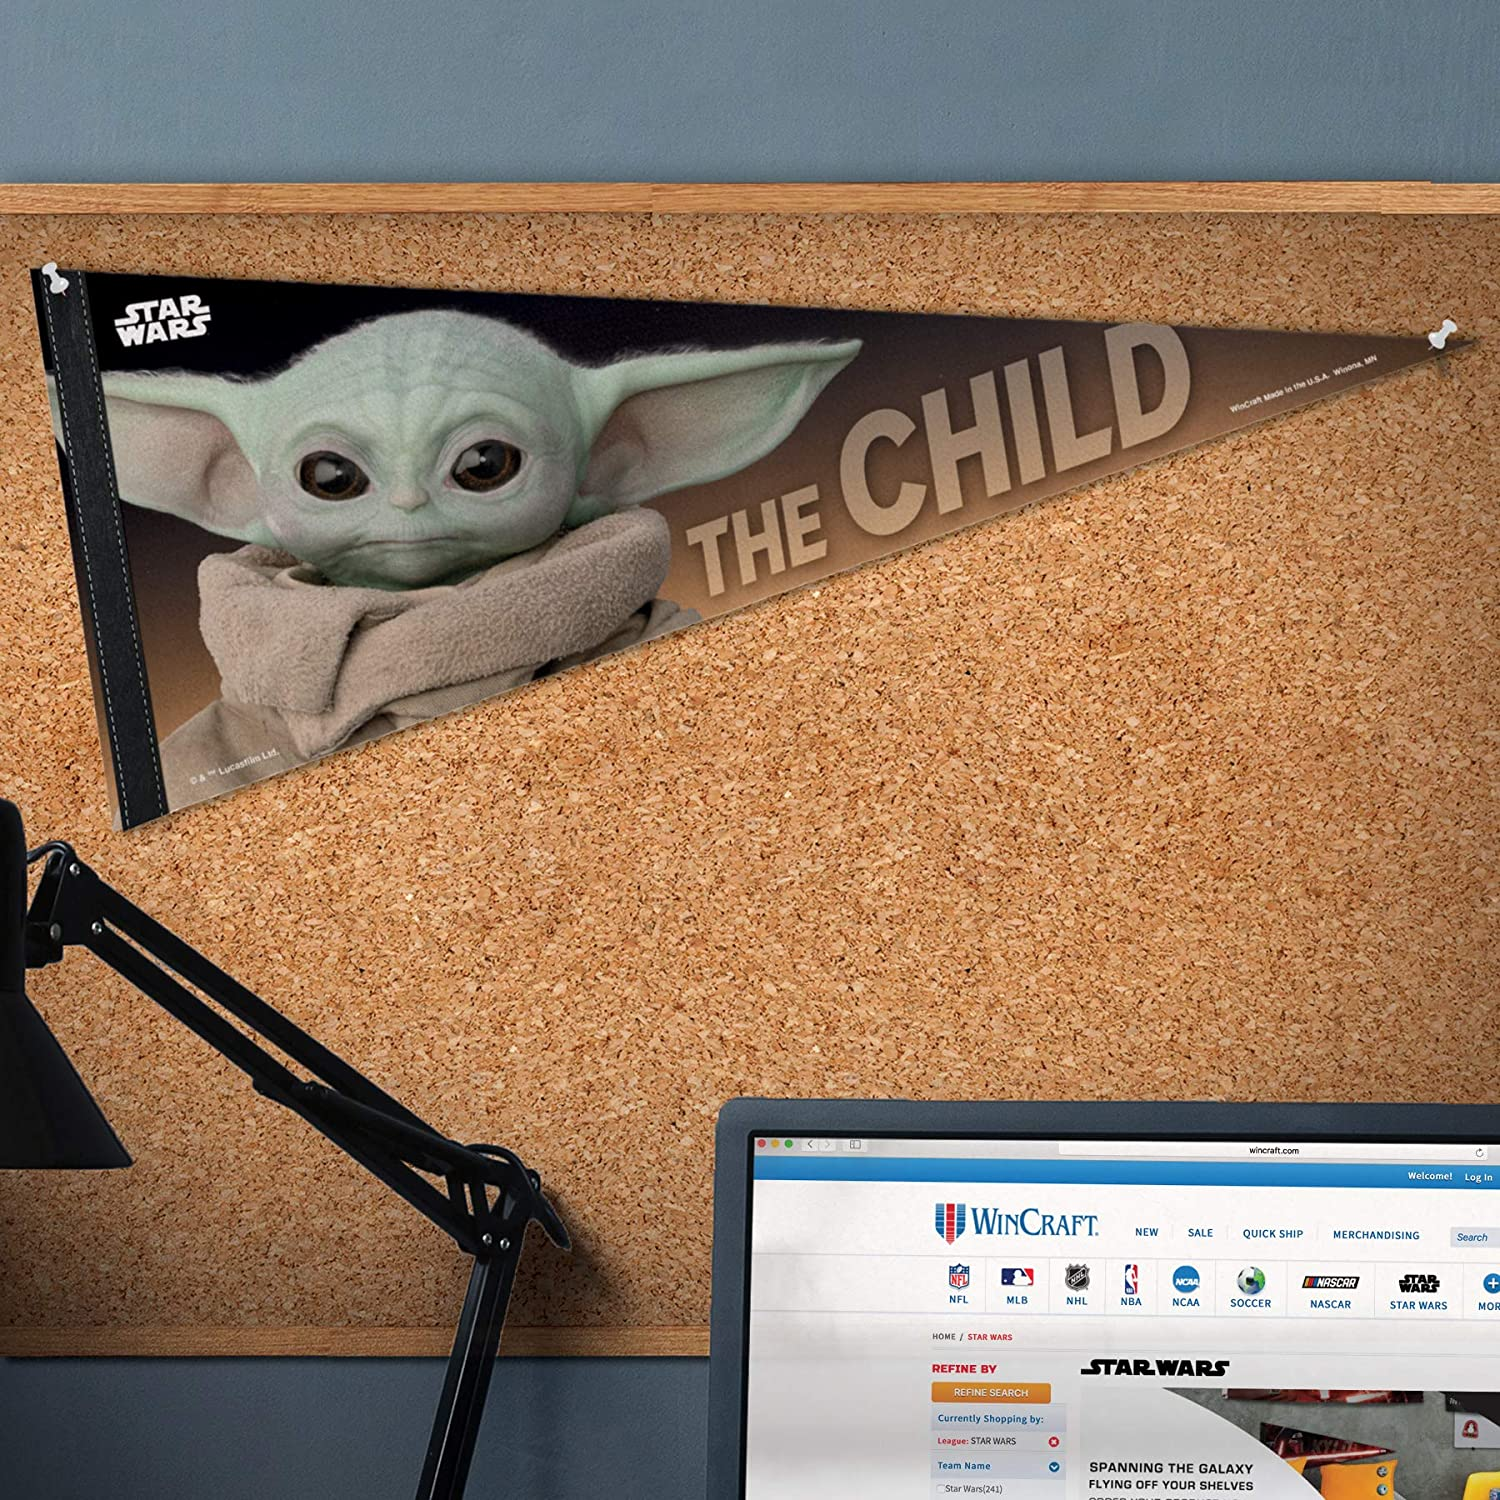 Mandalorian The Mandalorian A Star Wars Story The Child Premium Pennant 12 x 30 One Size Multicolor